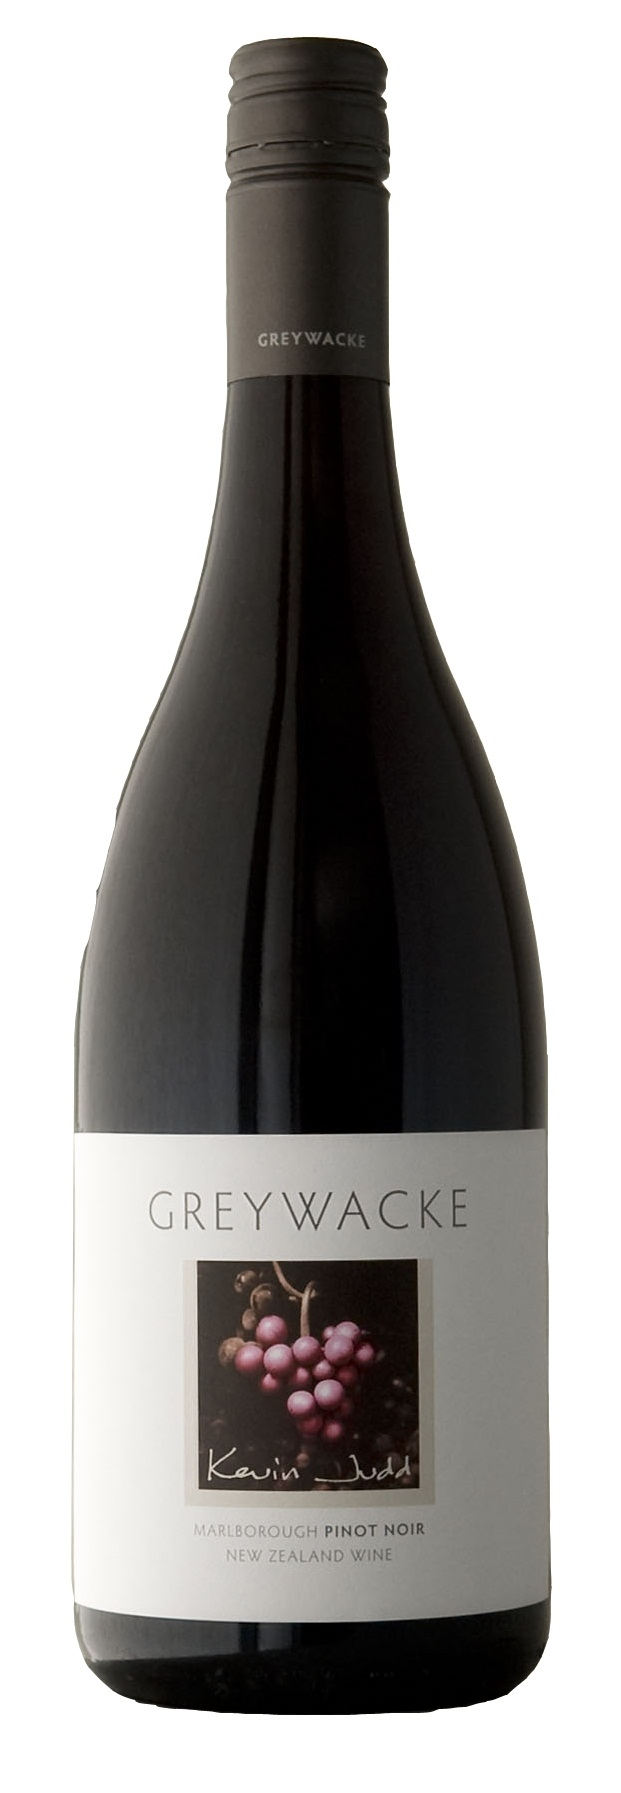 Greywacke, Marlborough Pinot Noir 2015